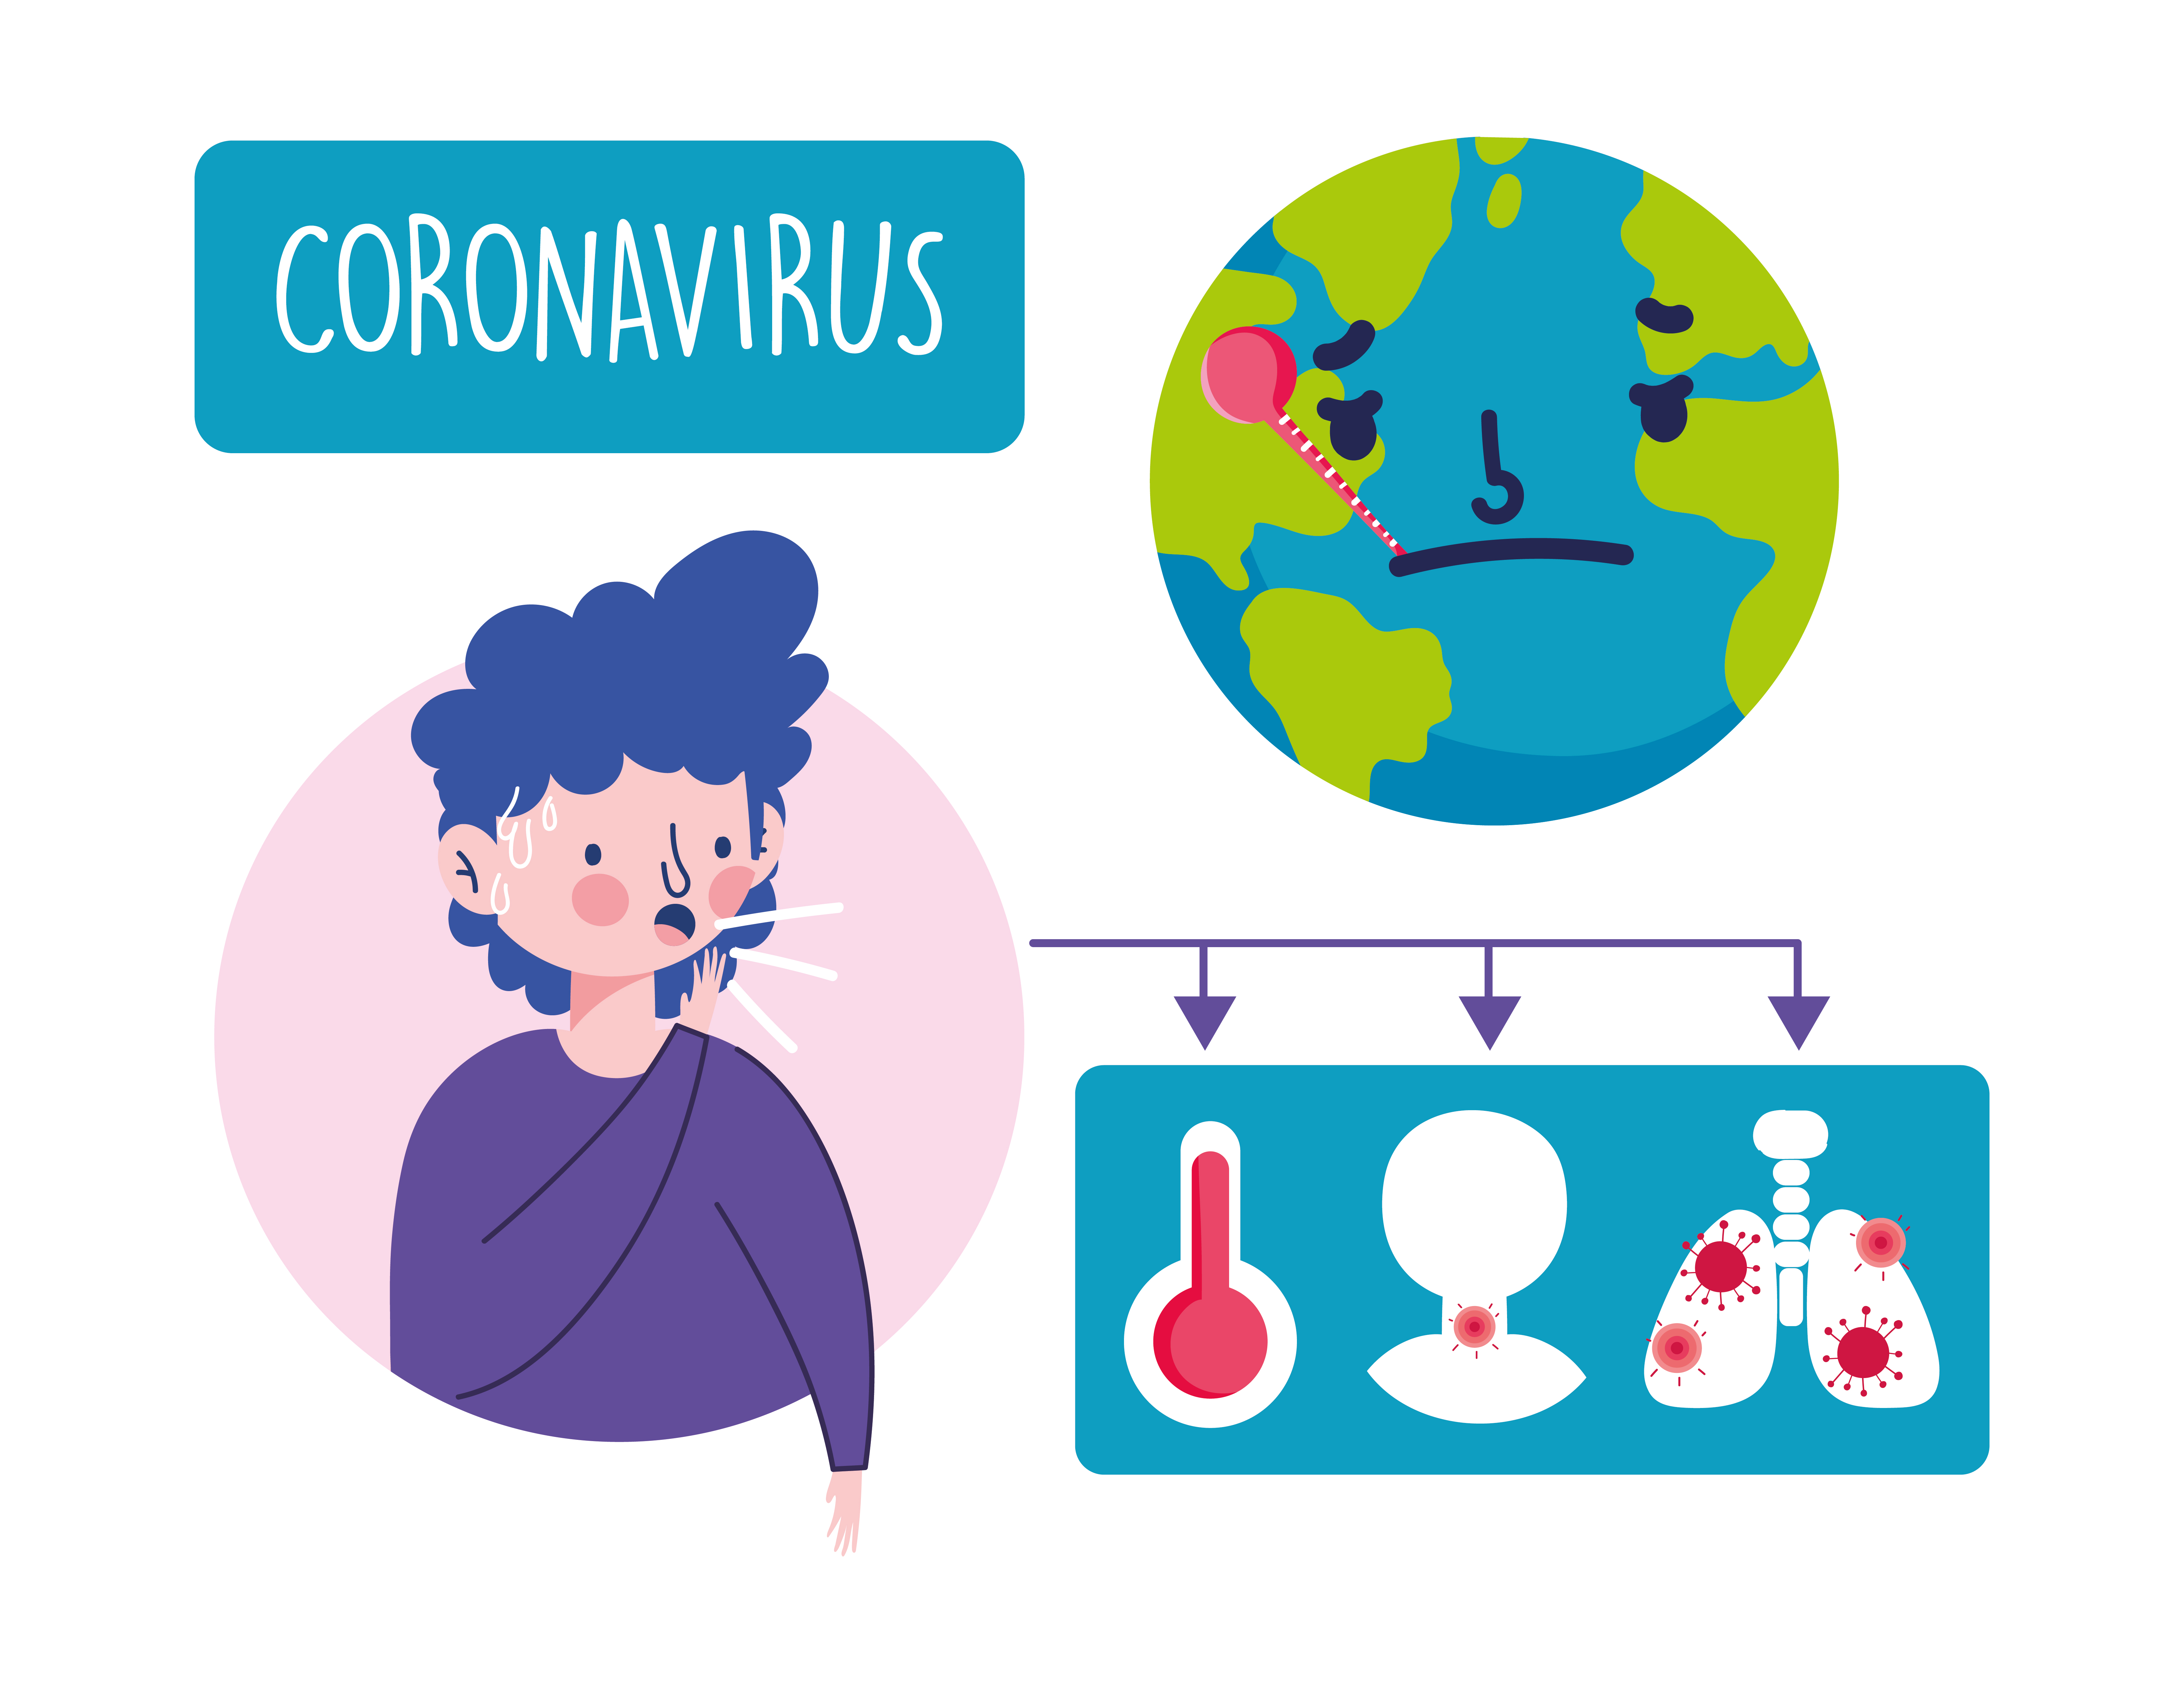 Young man with coronavirus symptoms infographic